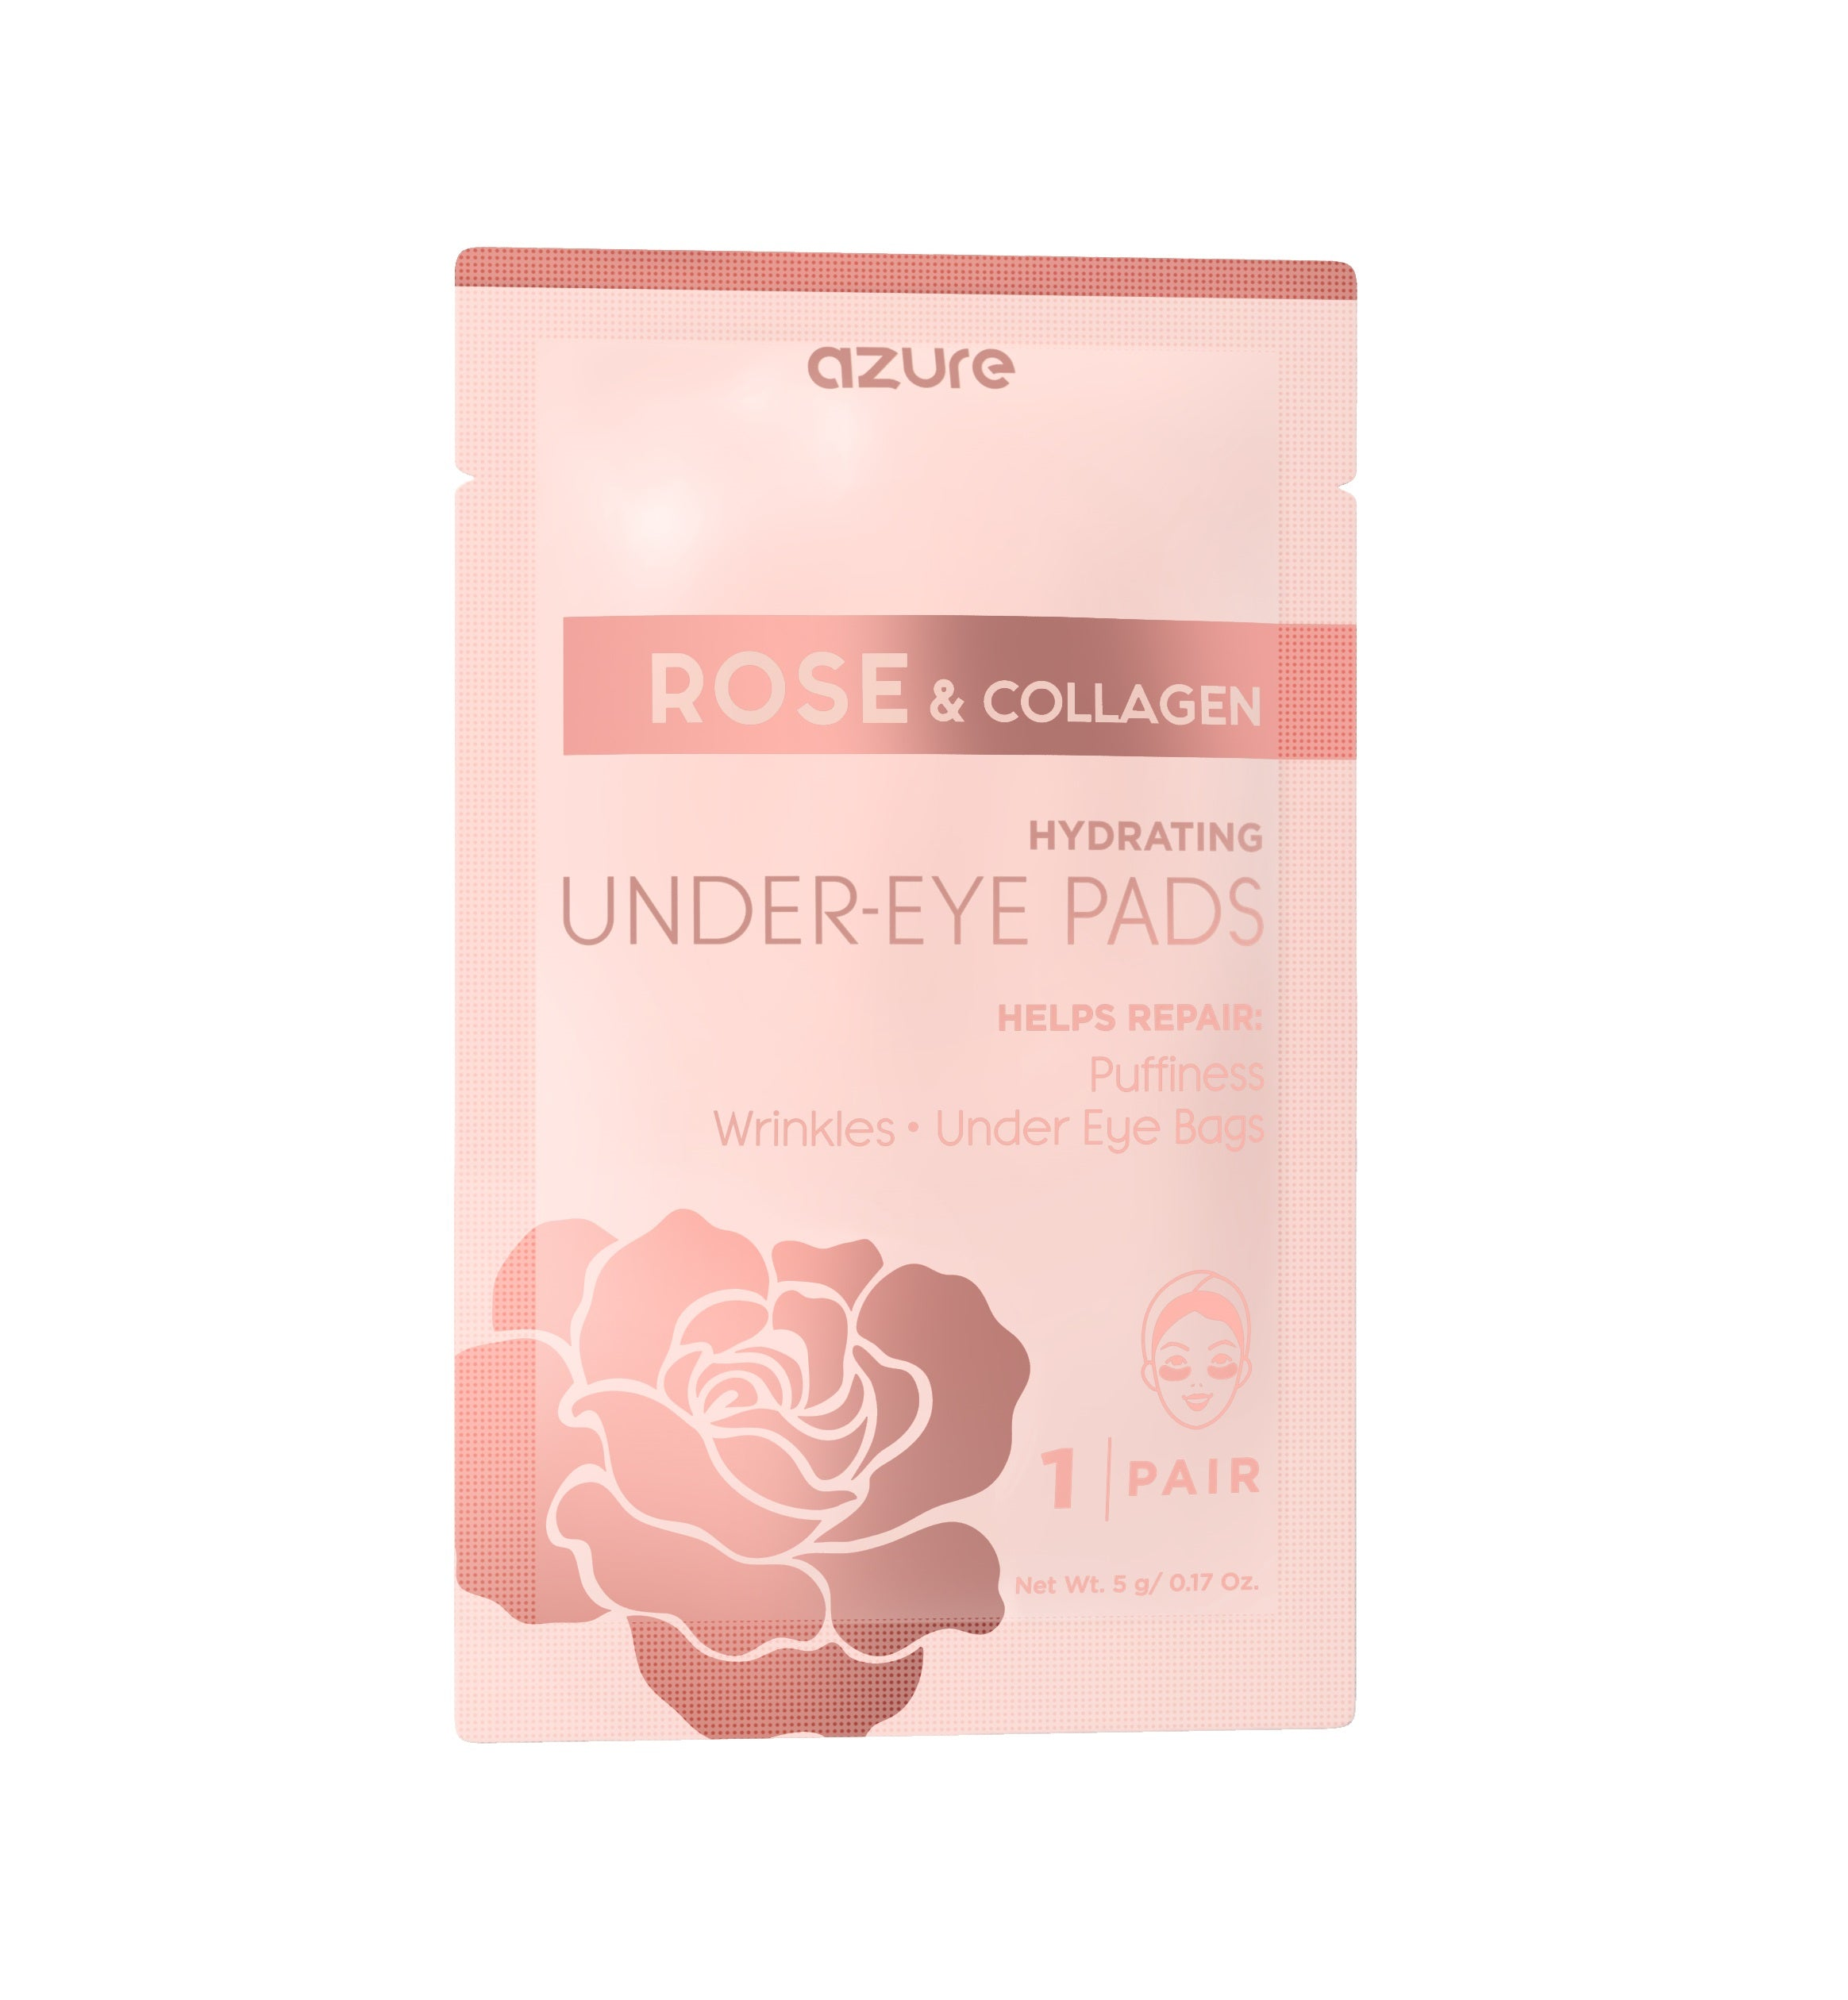 Rose & Collagen Hydrating Under Eye Pads